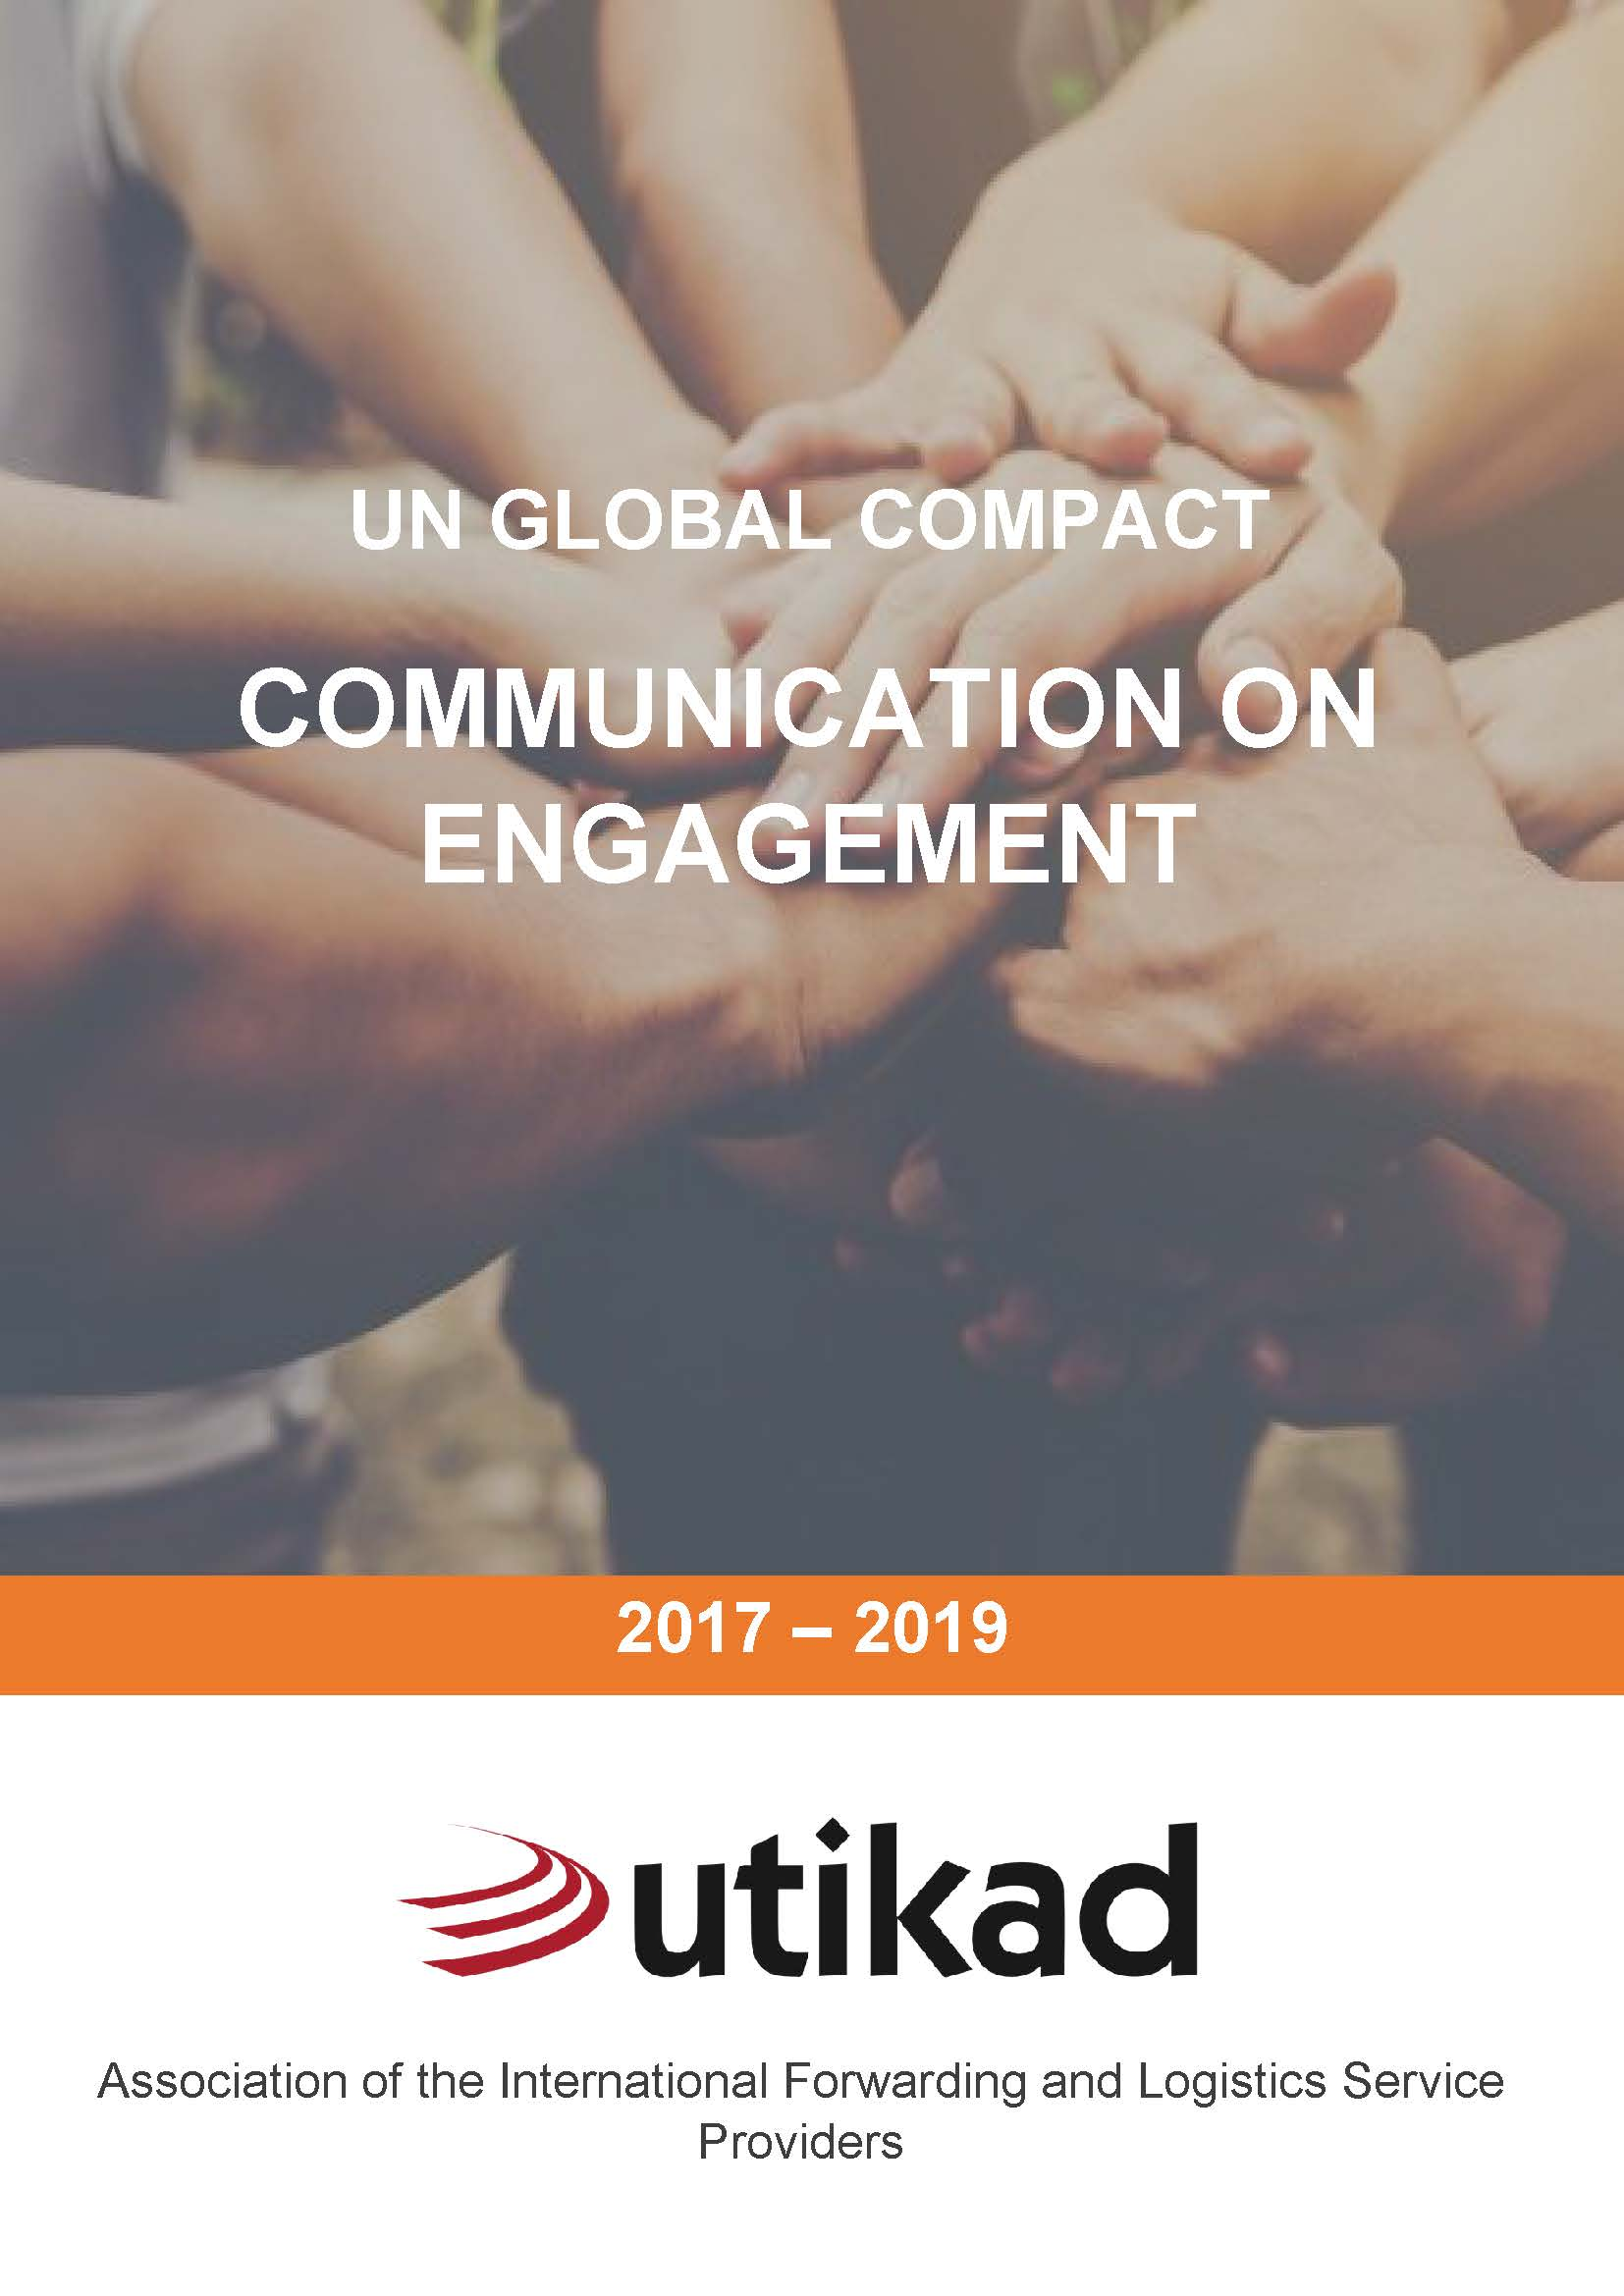 UTIKAD Publishes UN Global Compact Report